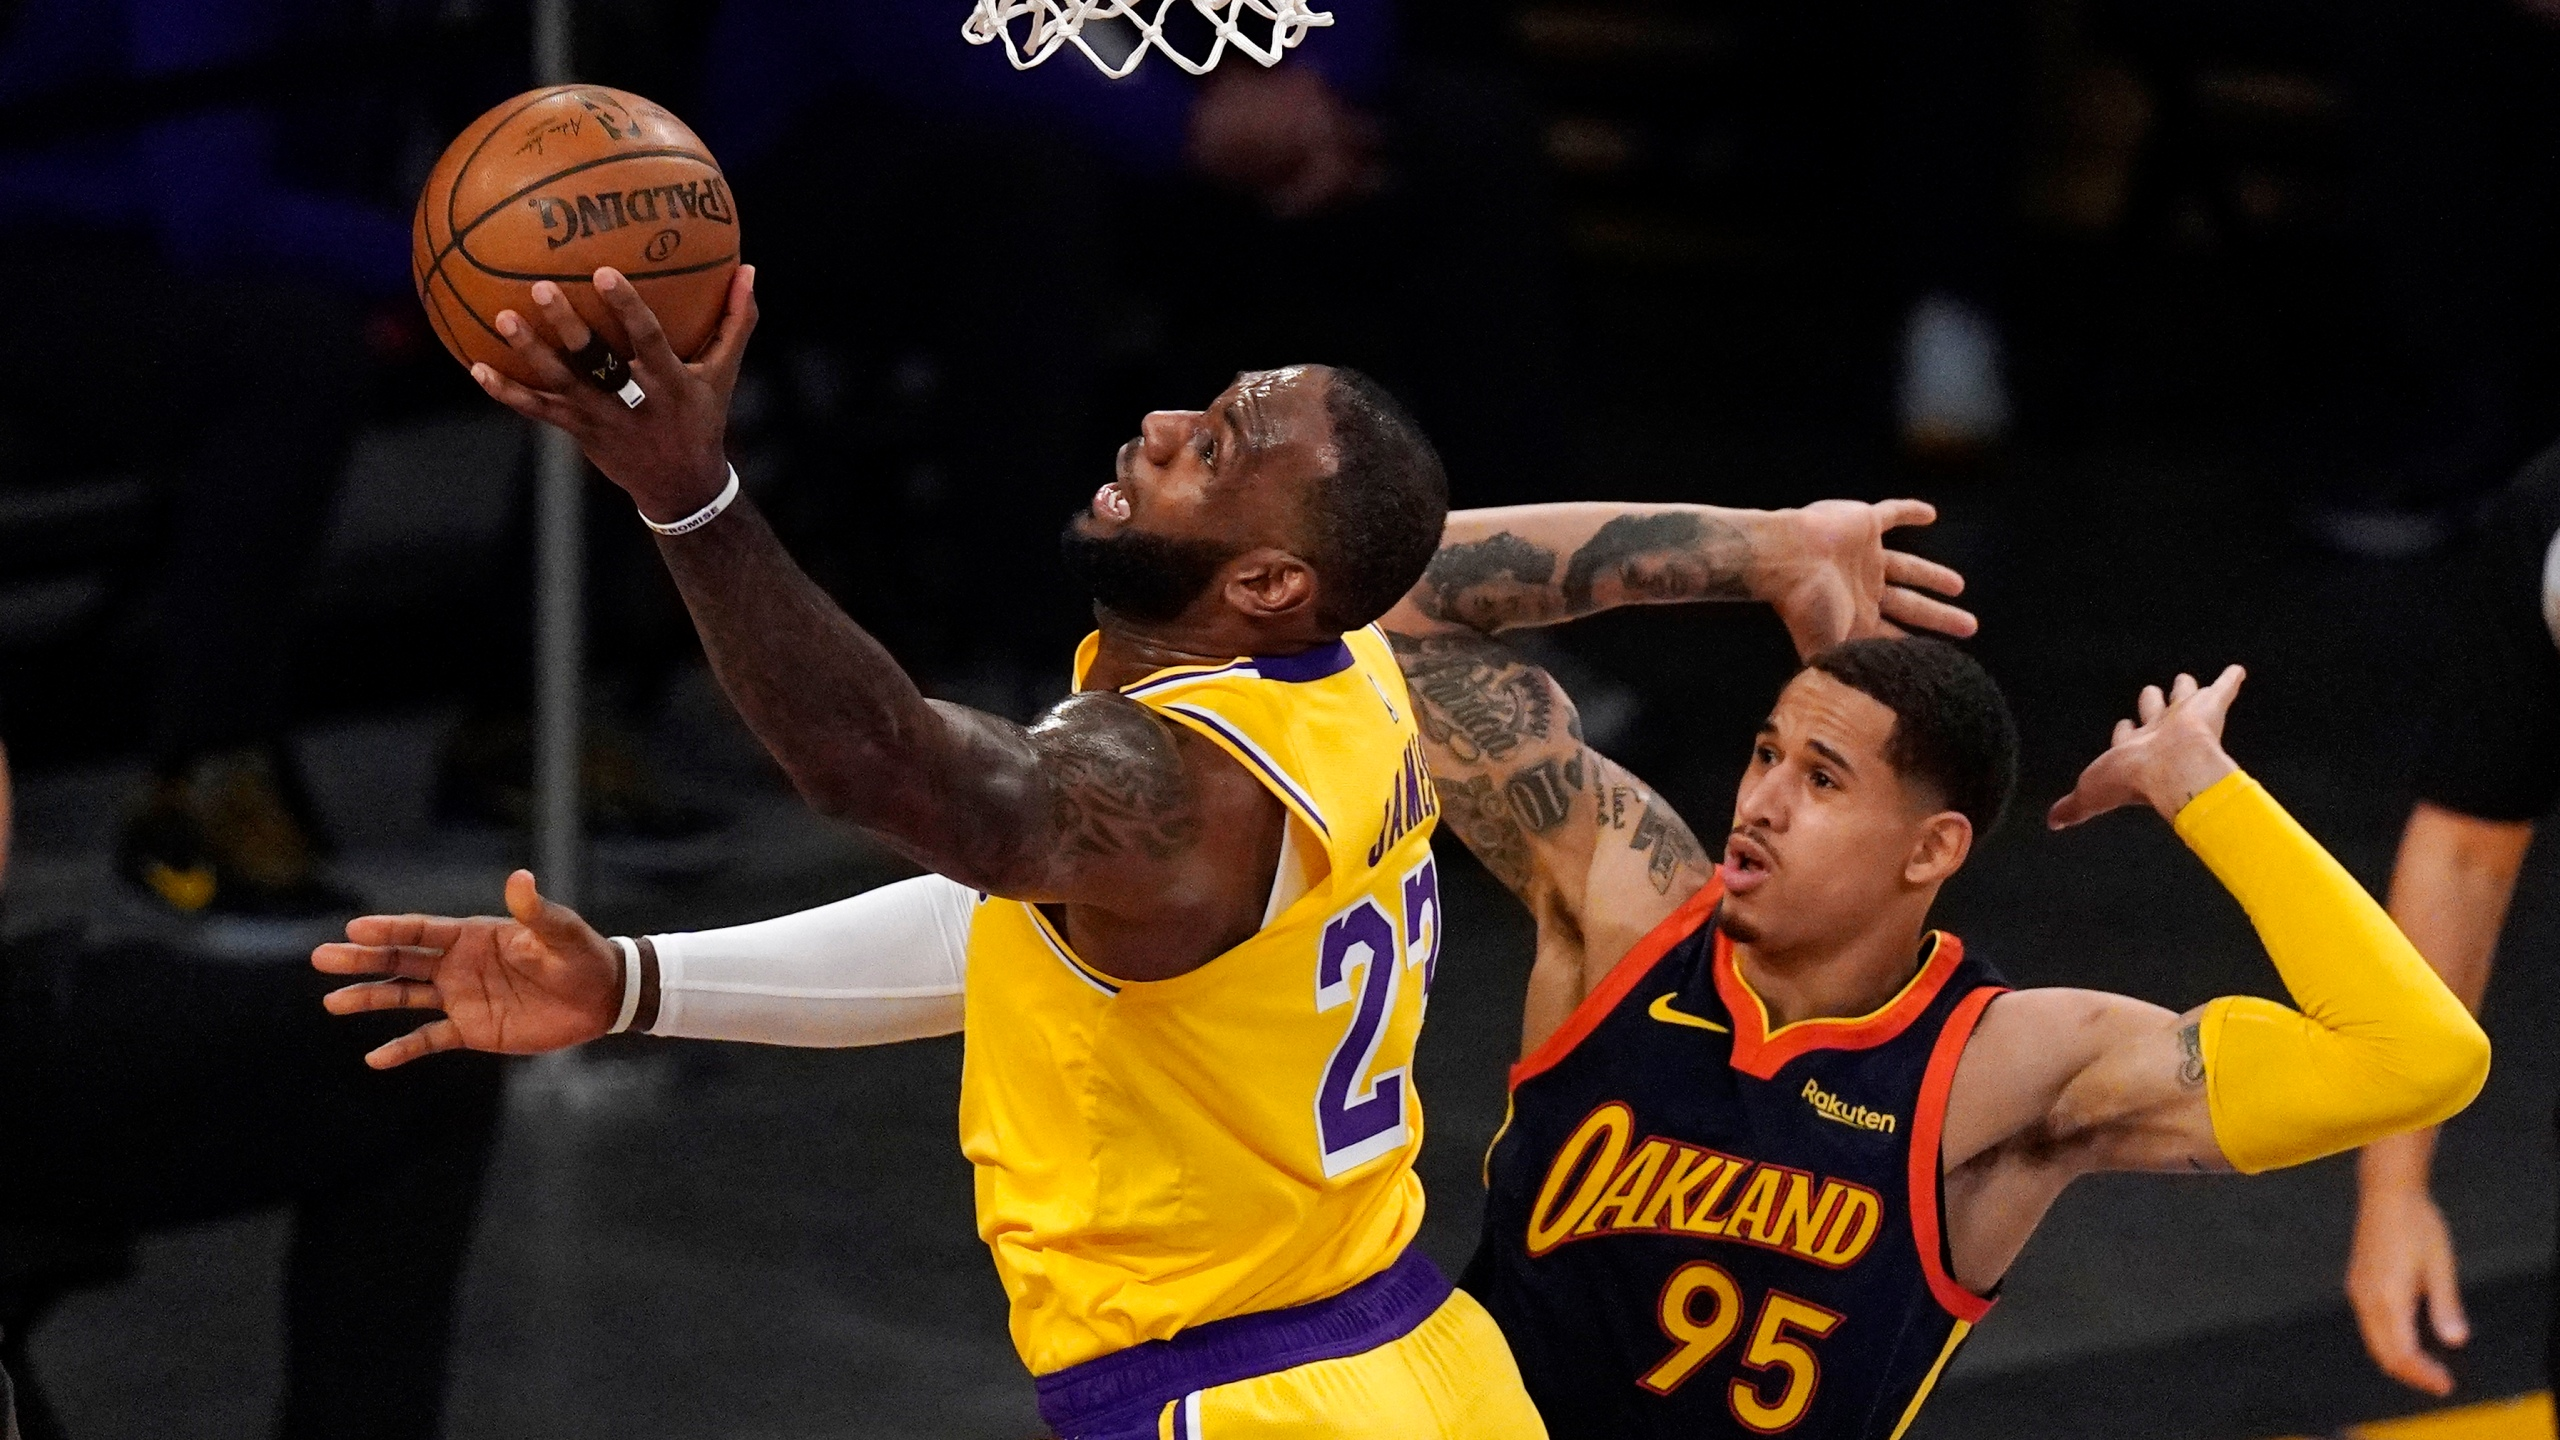 Los Angeles Lakers forward LeBron James, left, shoots as Golden State Warriors forward Juan Toscano-Anderson defends during the first half of an NBA basketball Western Conference Play-In game on May 19, 2021, in Los Angeles. (AP Photo/Mark J. Terrill)